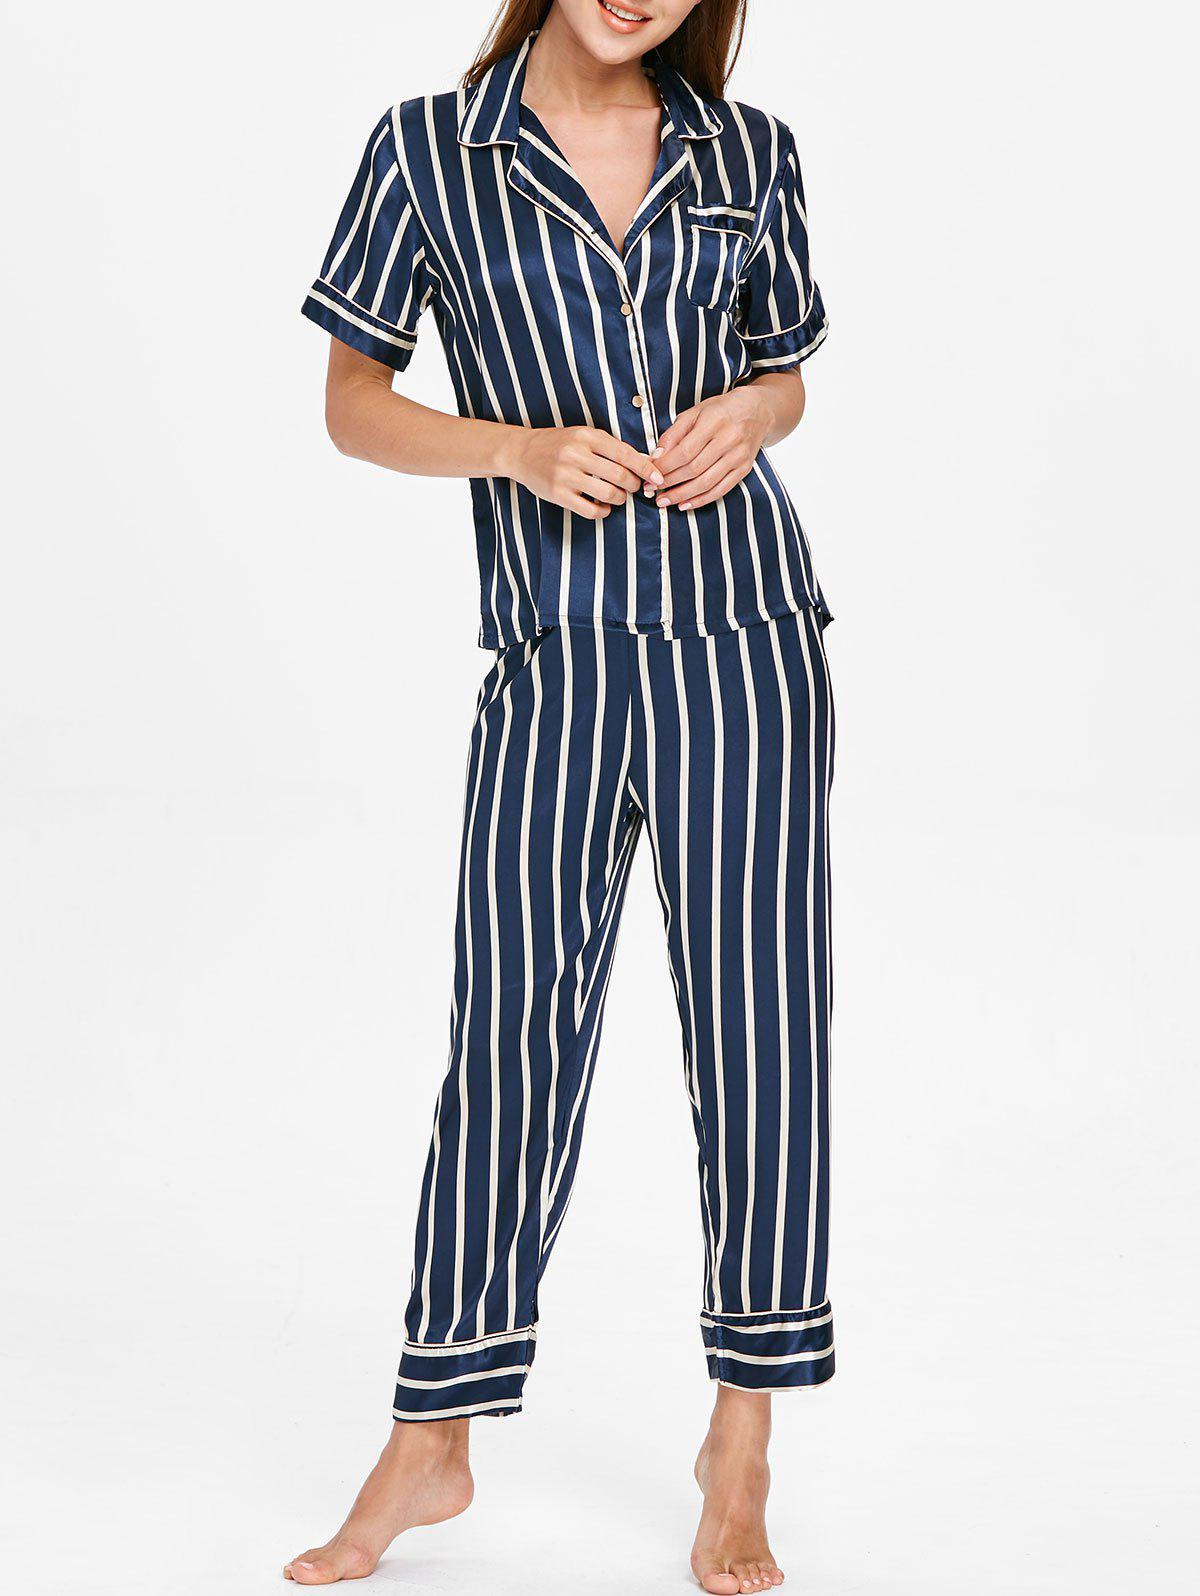 Discount Striped Print Sleepwear Suit